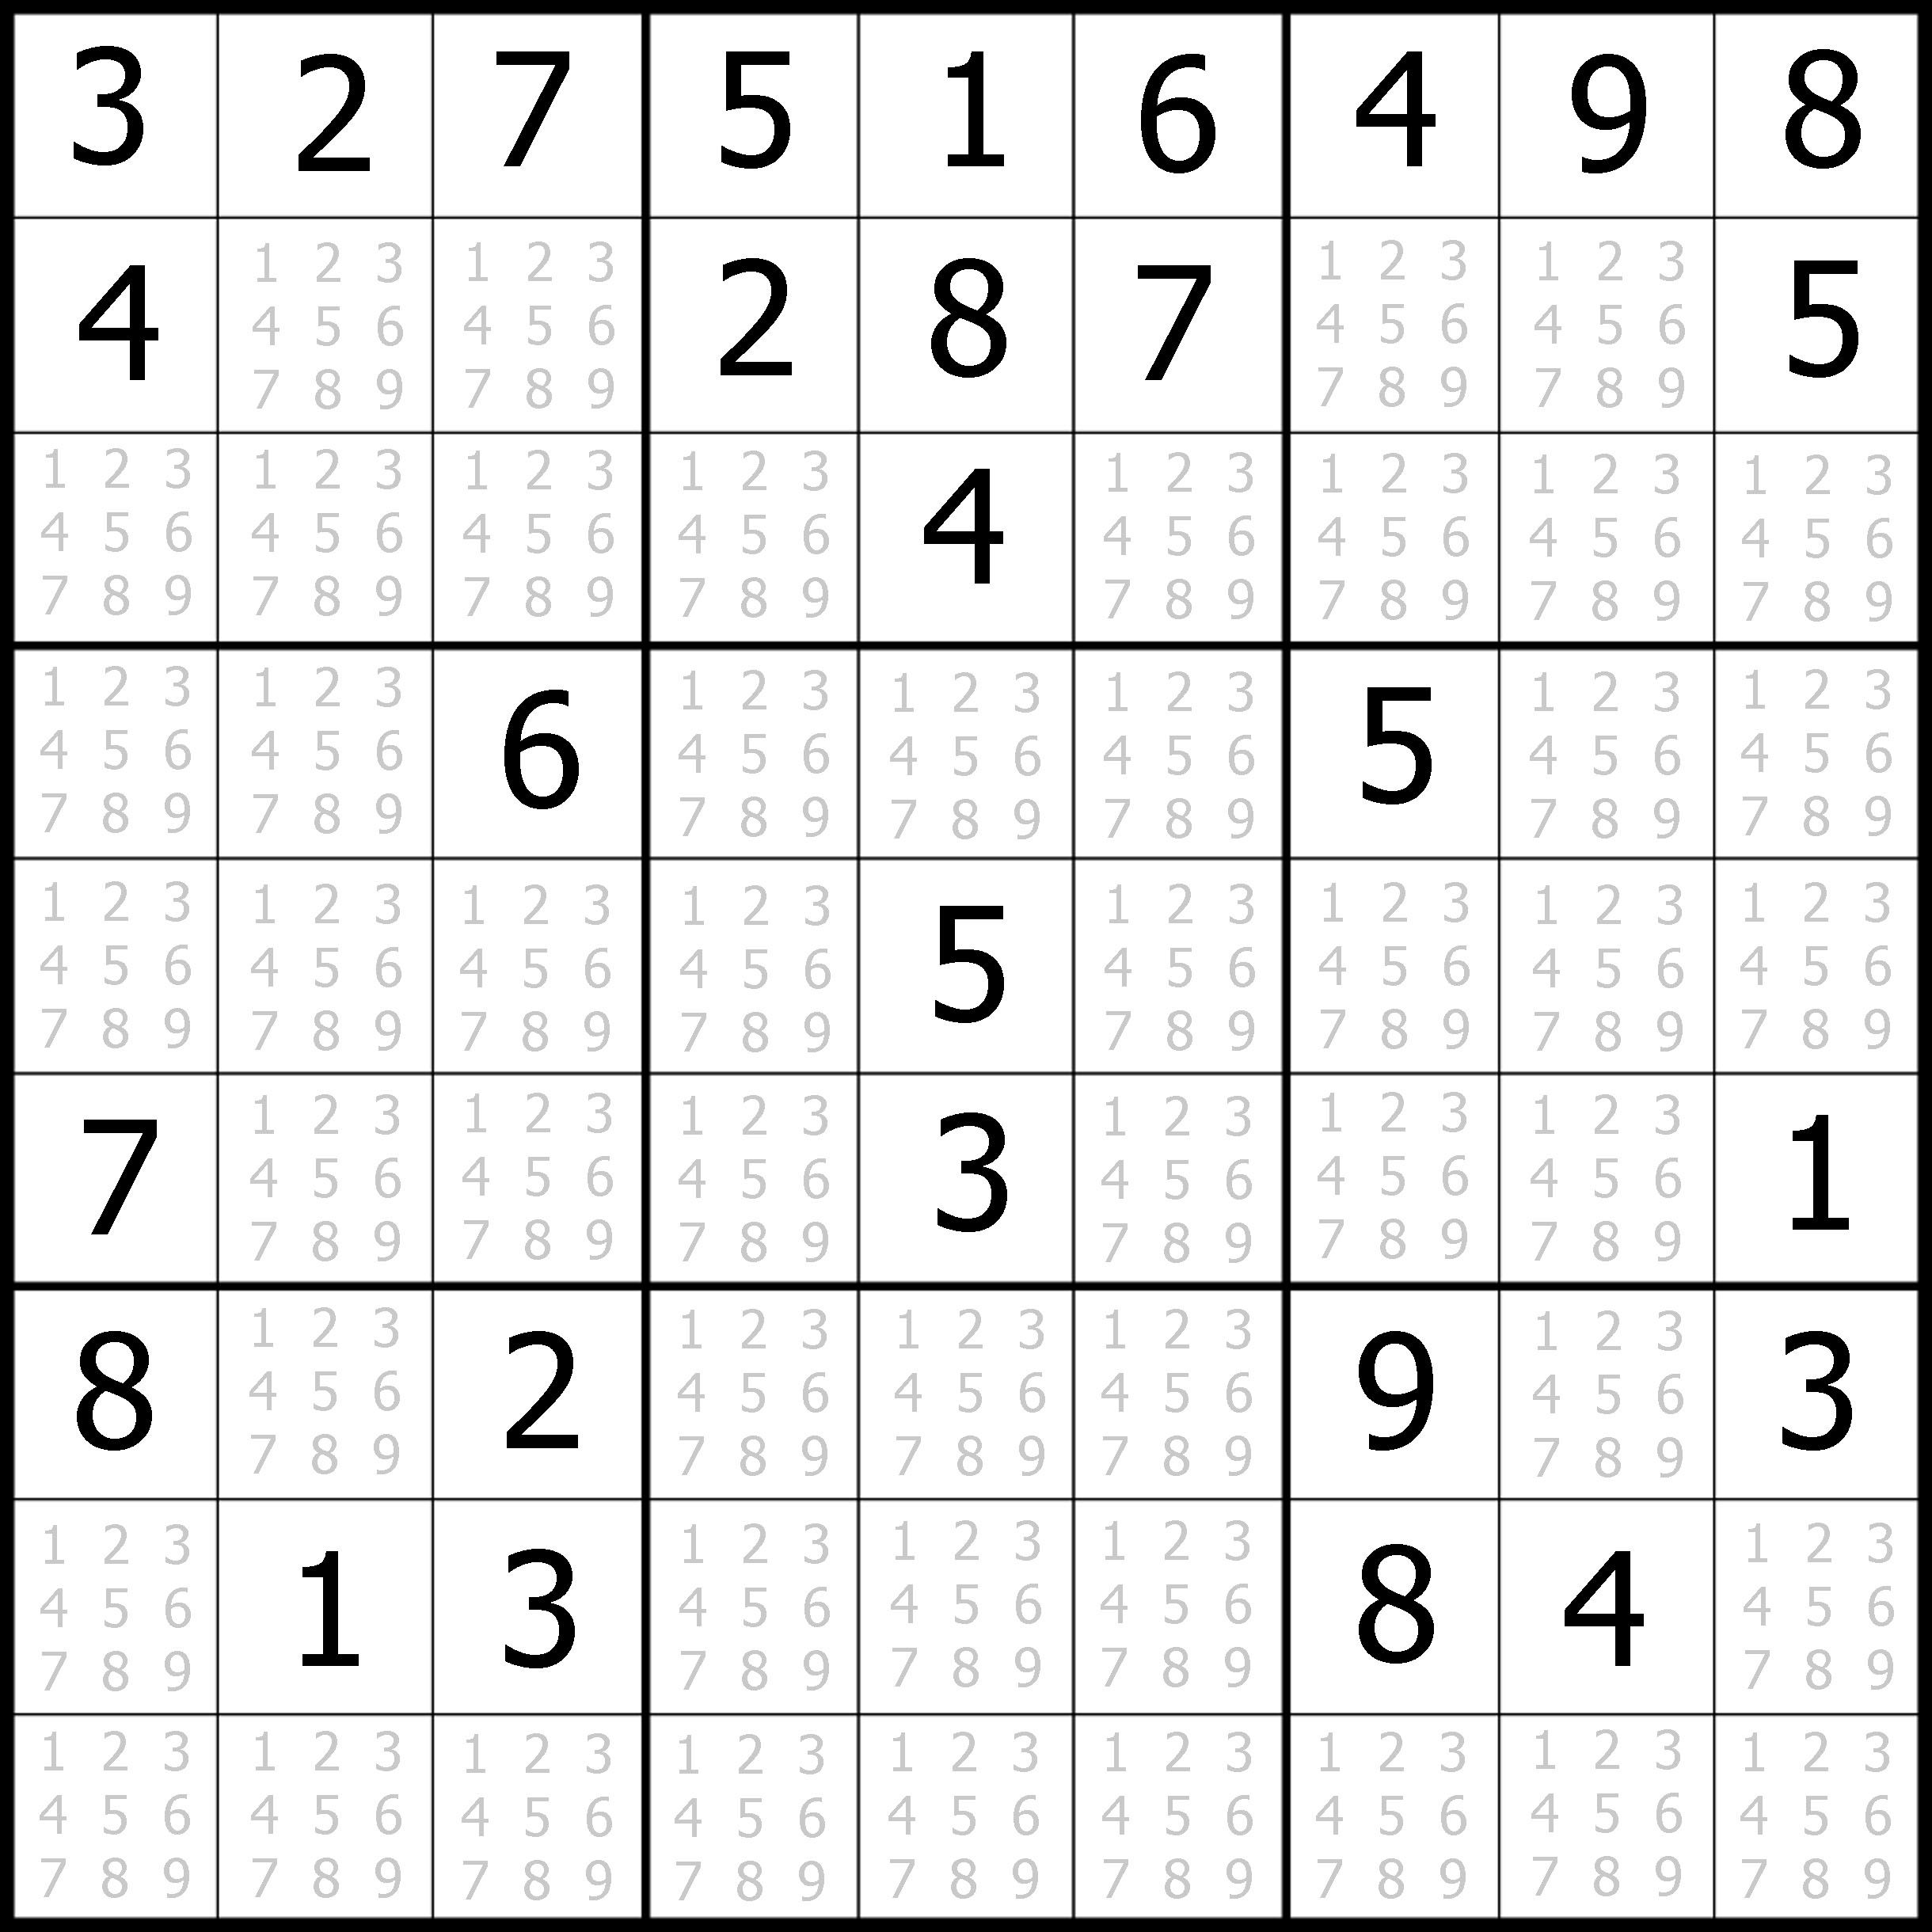 photograph relating to Printable Sudoku for Kids identified as Printable Sudoku Puzzles Simple #1 Printable Crossword Puzzles